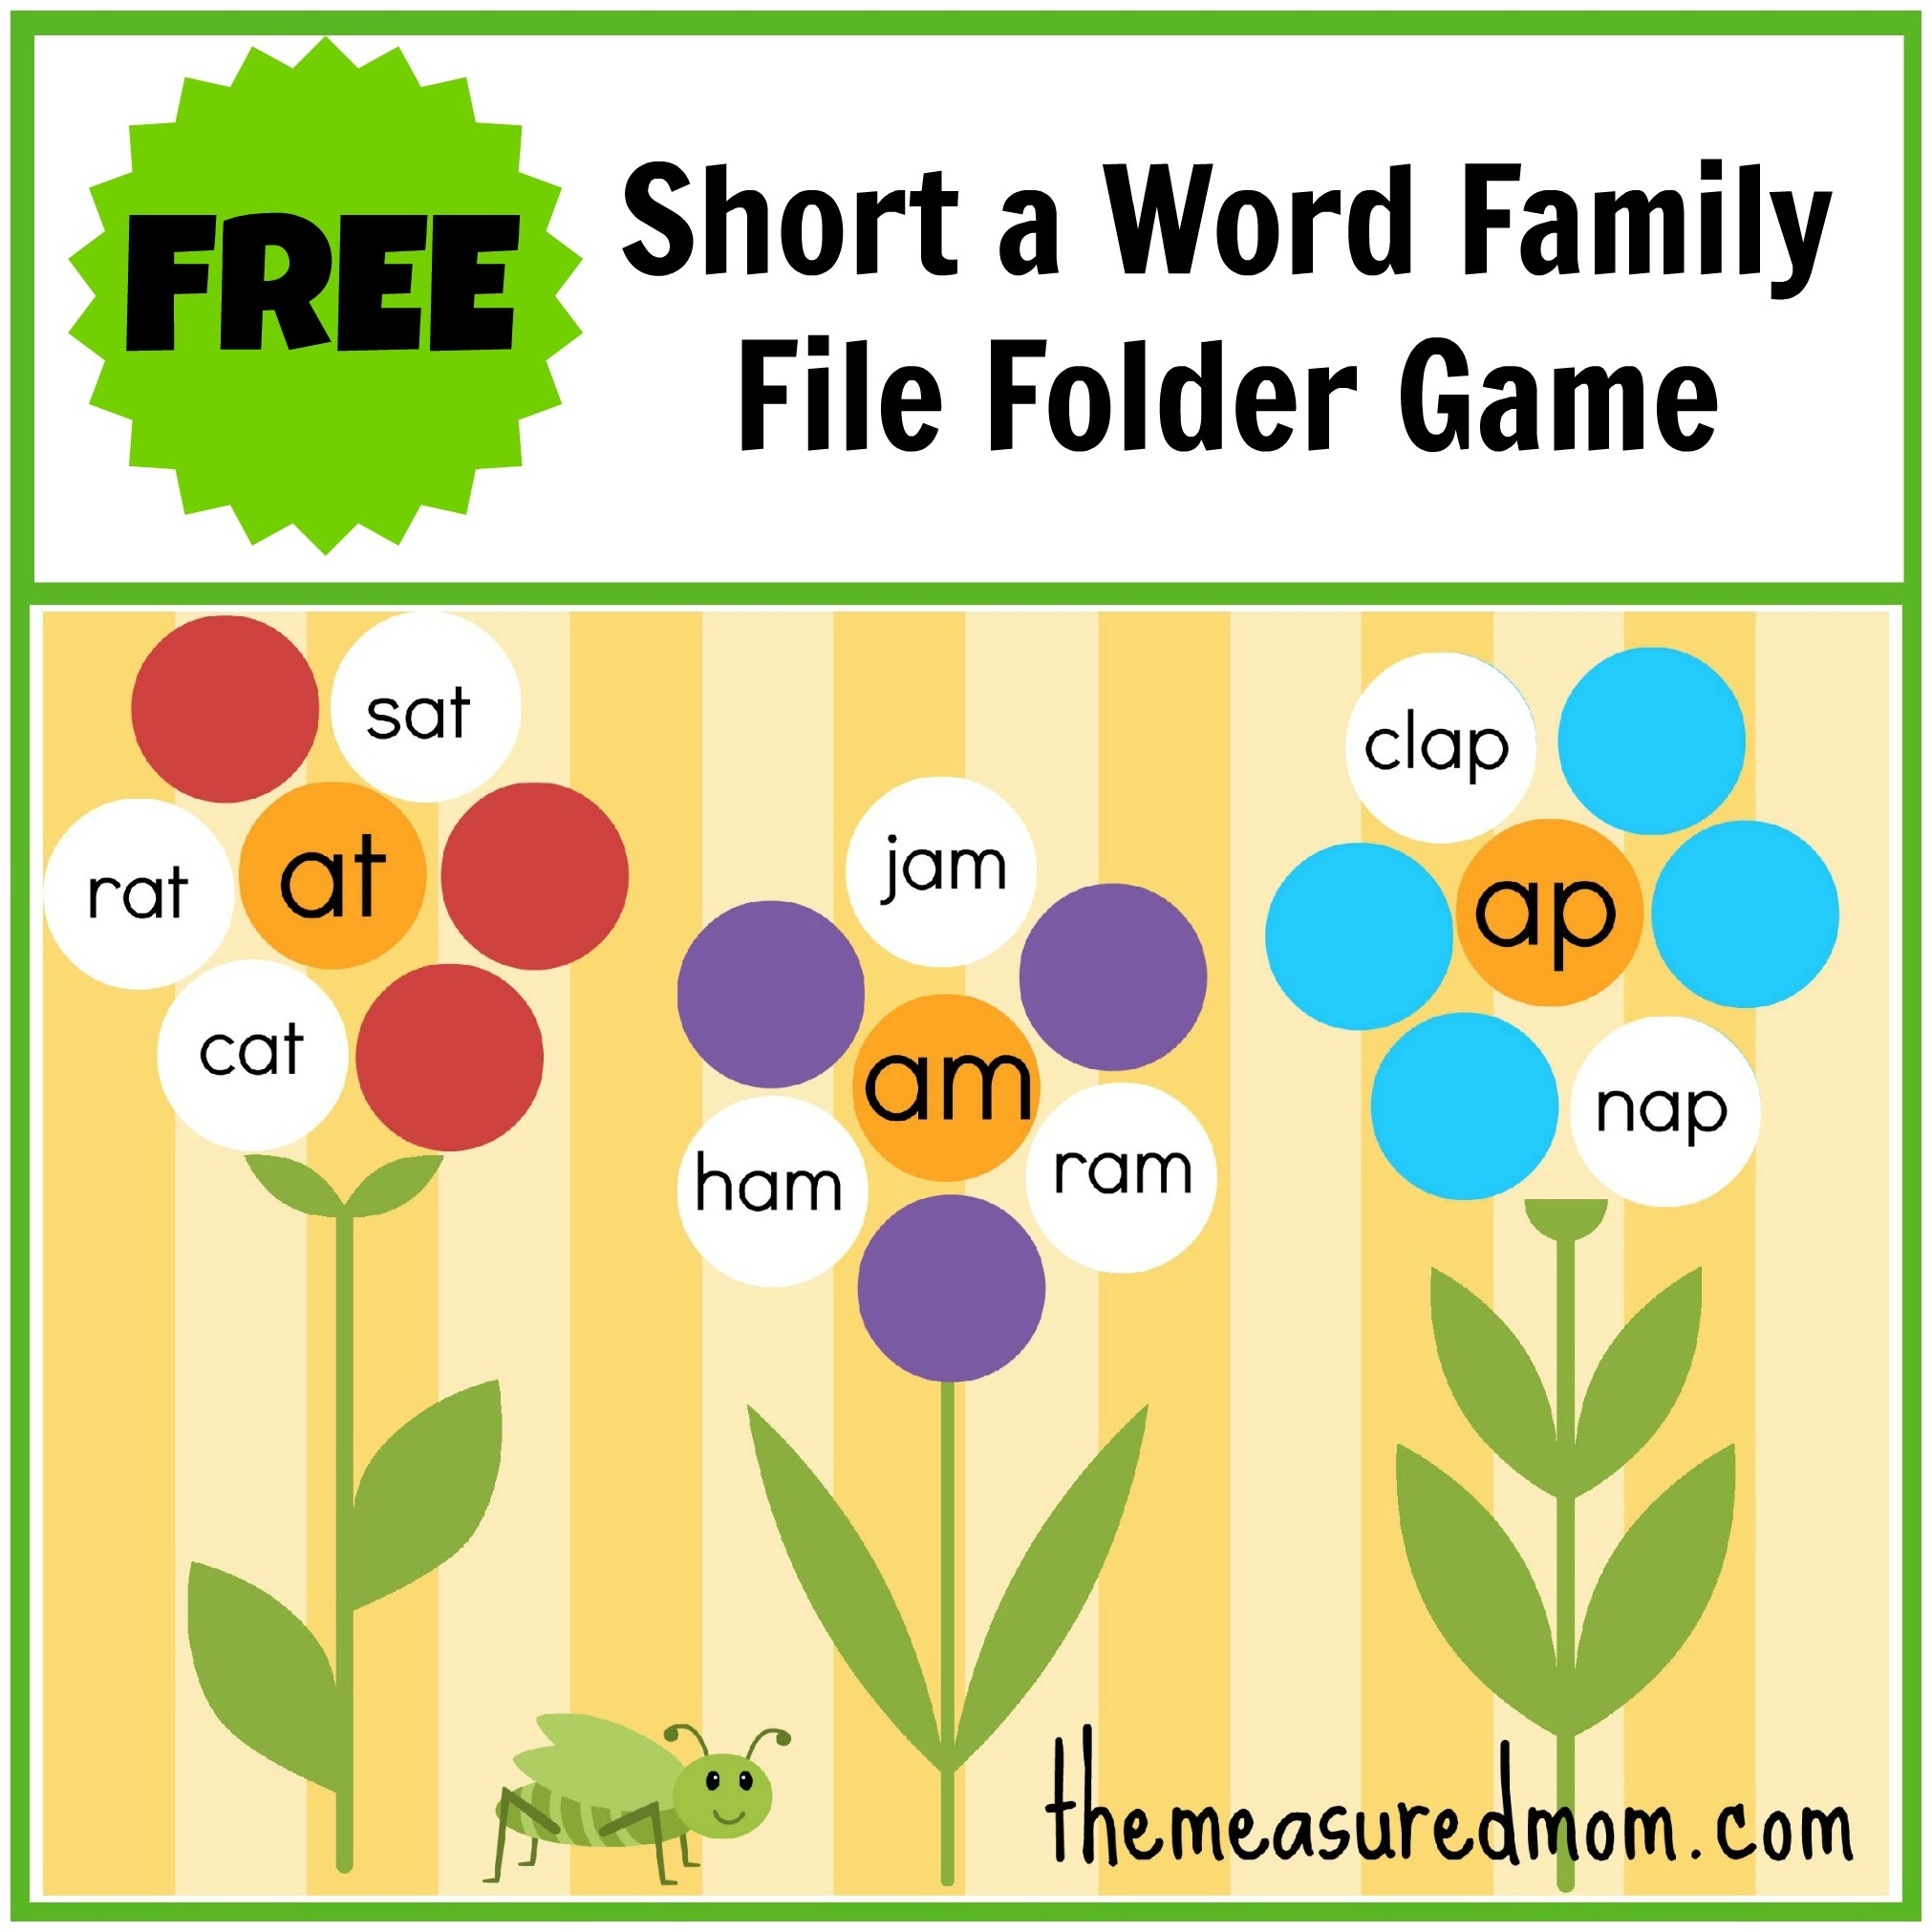 Free Word Family File Folder Game: Short A - The Measured Mom - Free Printable Folder Games